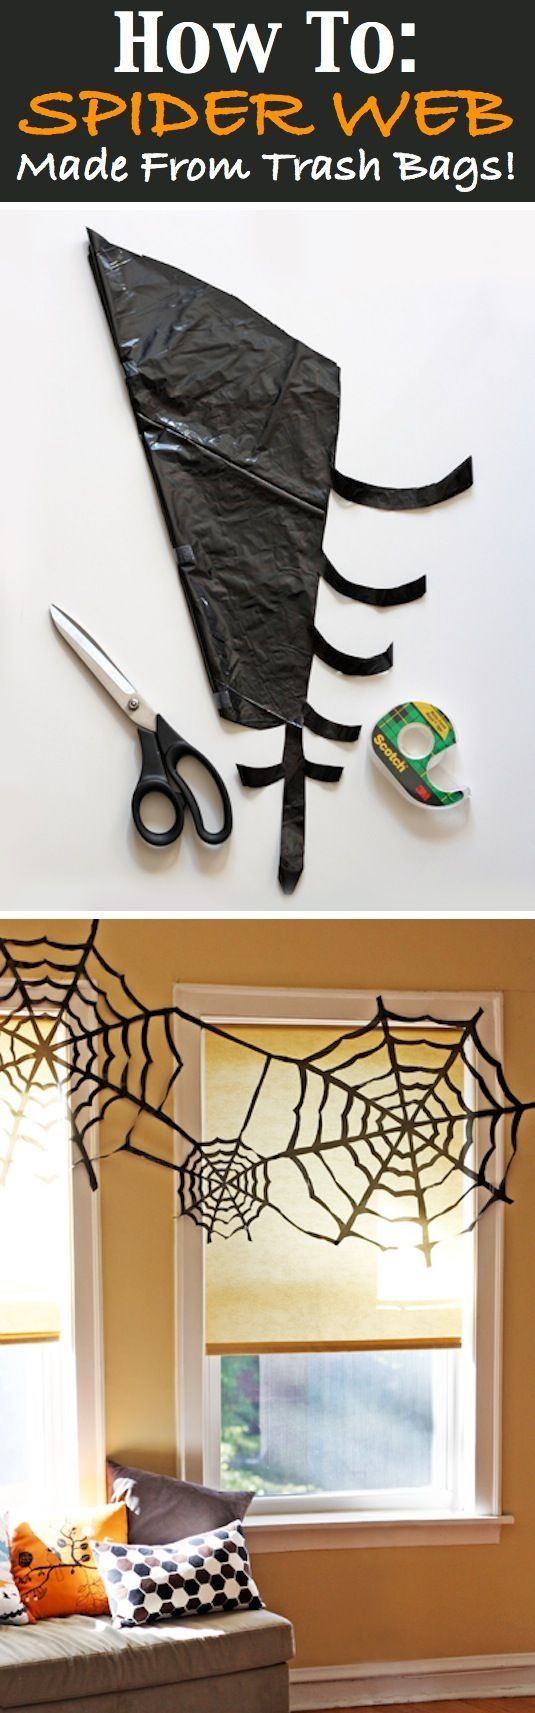 16 easy but awesome homemade halloween decorations by echkbet - Decorate For Halloween Cheap